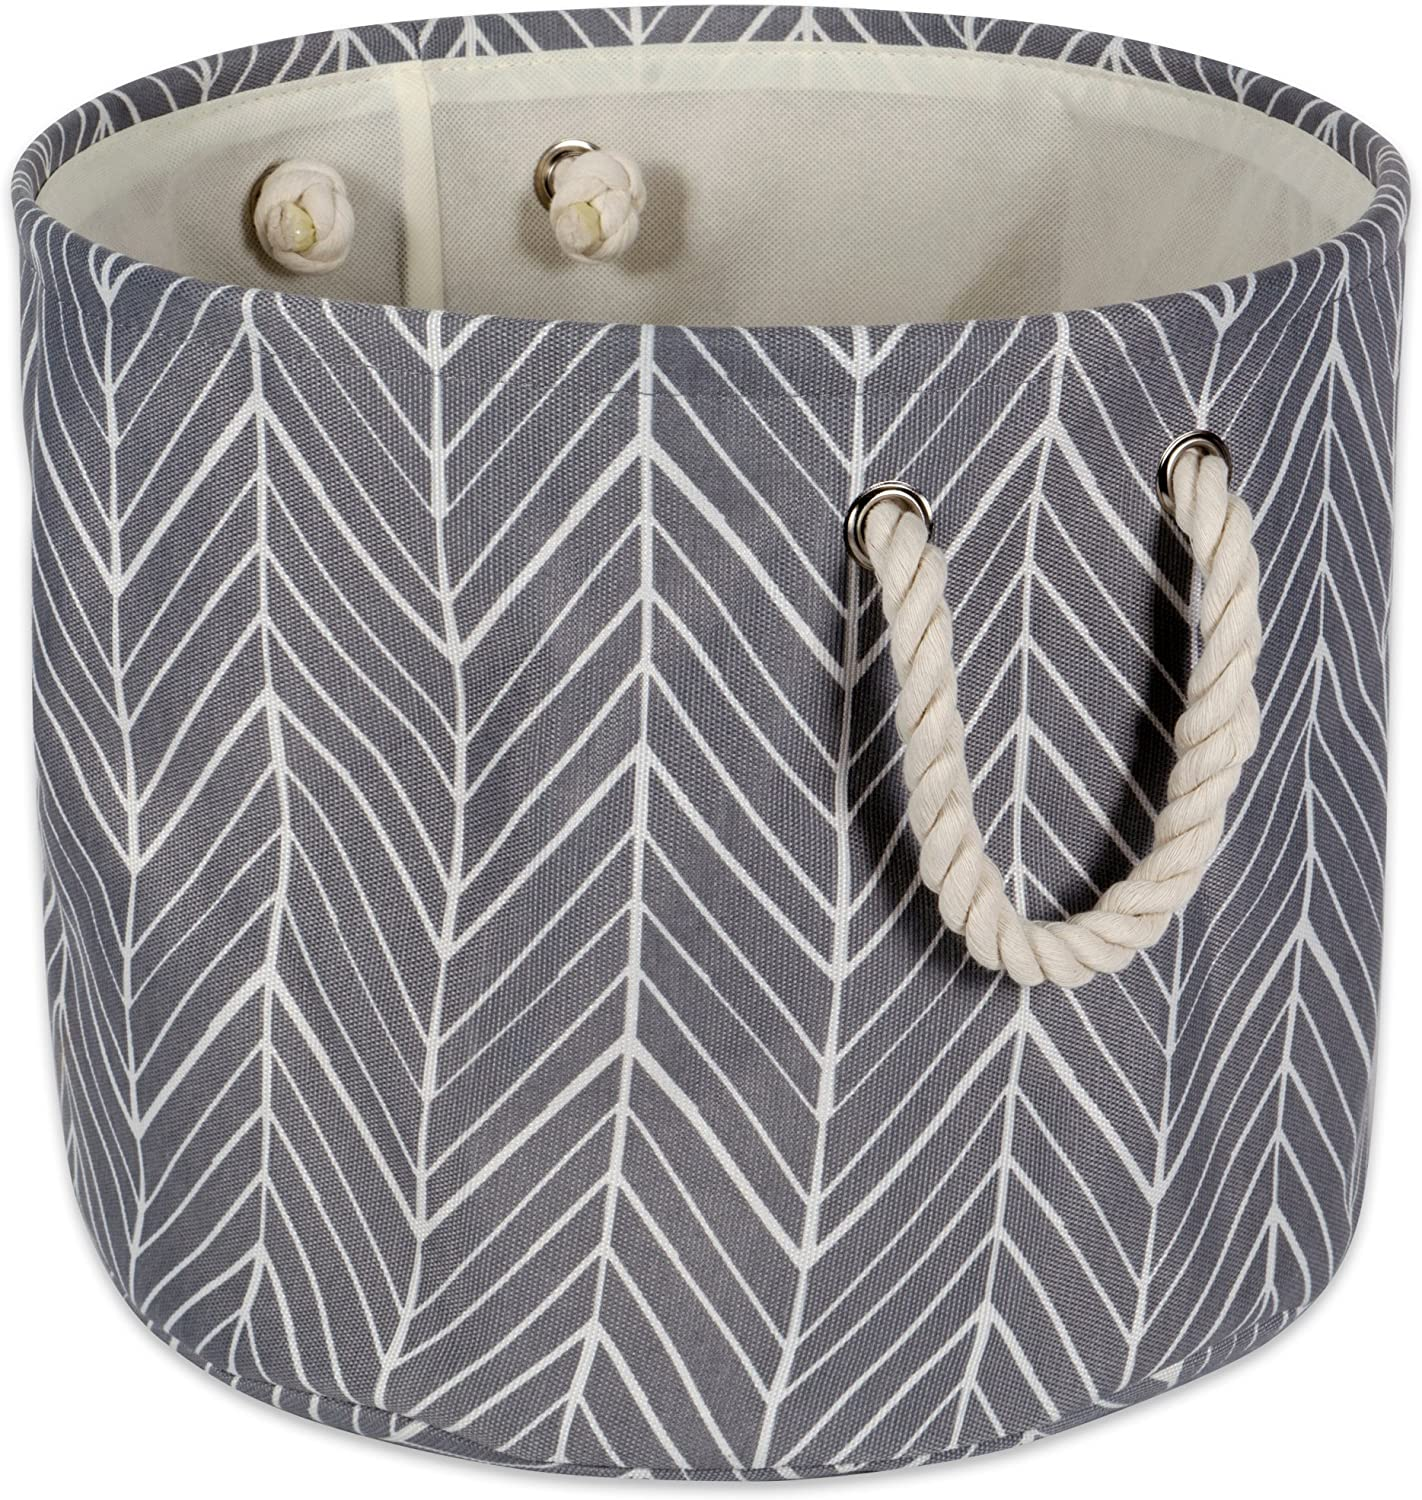 """DII Collapsible Polyester Storage Basket or Bin with Durable Cotton Handles, Home Organizer Solution for Office, Bedroom, Closet, Toys, & Laundry(Large Round– 15x16""""), Gray Herringbone"""